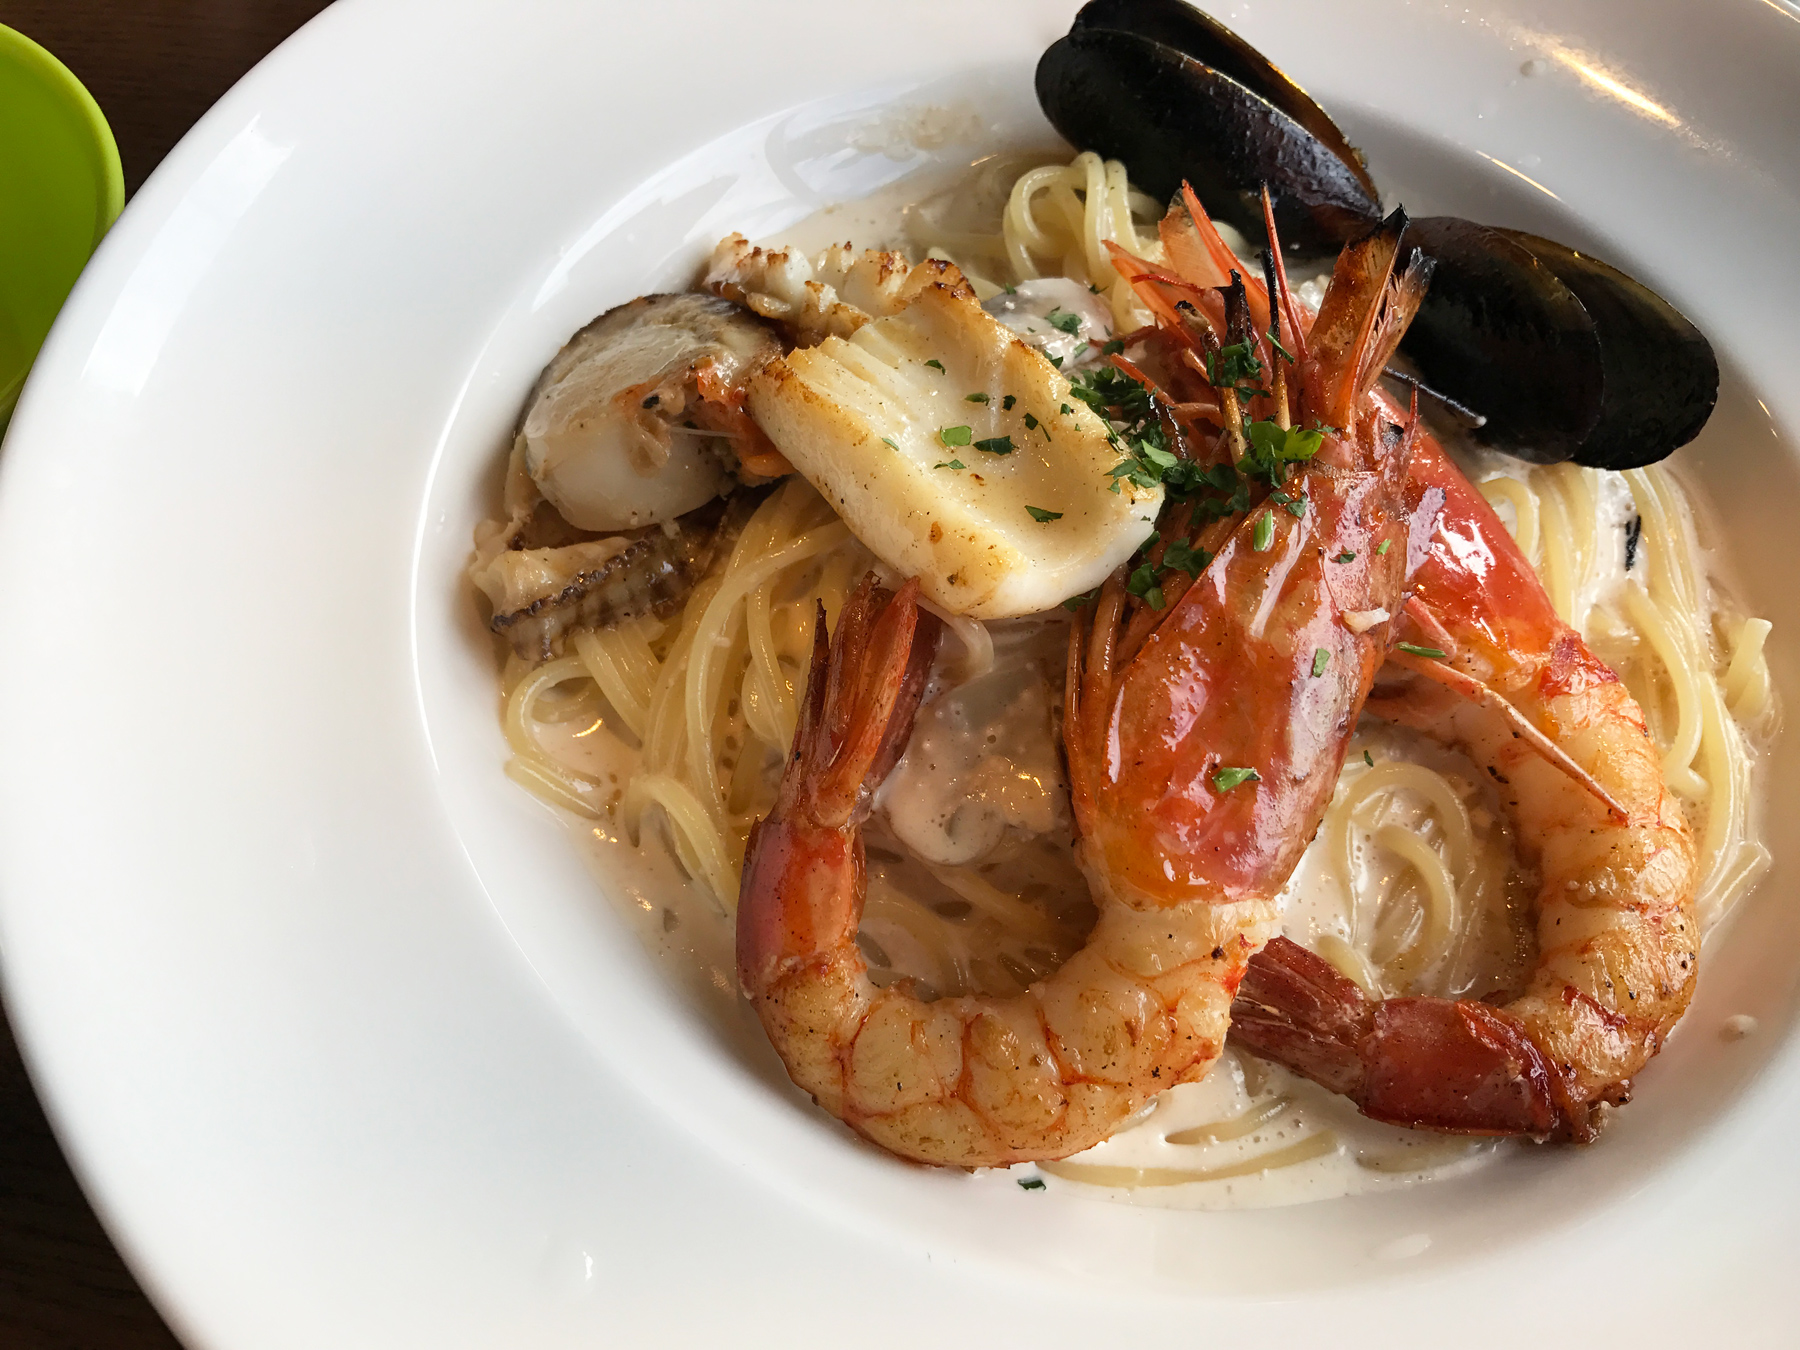 Seafood pasta! Must eat all the seafood while I'm in Japan.